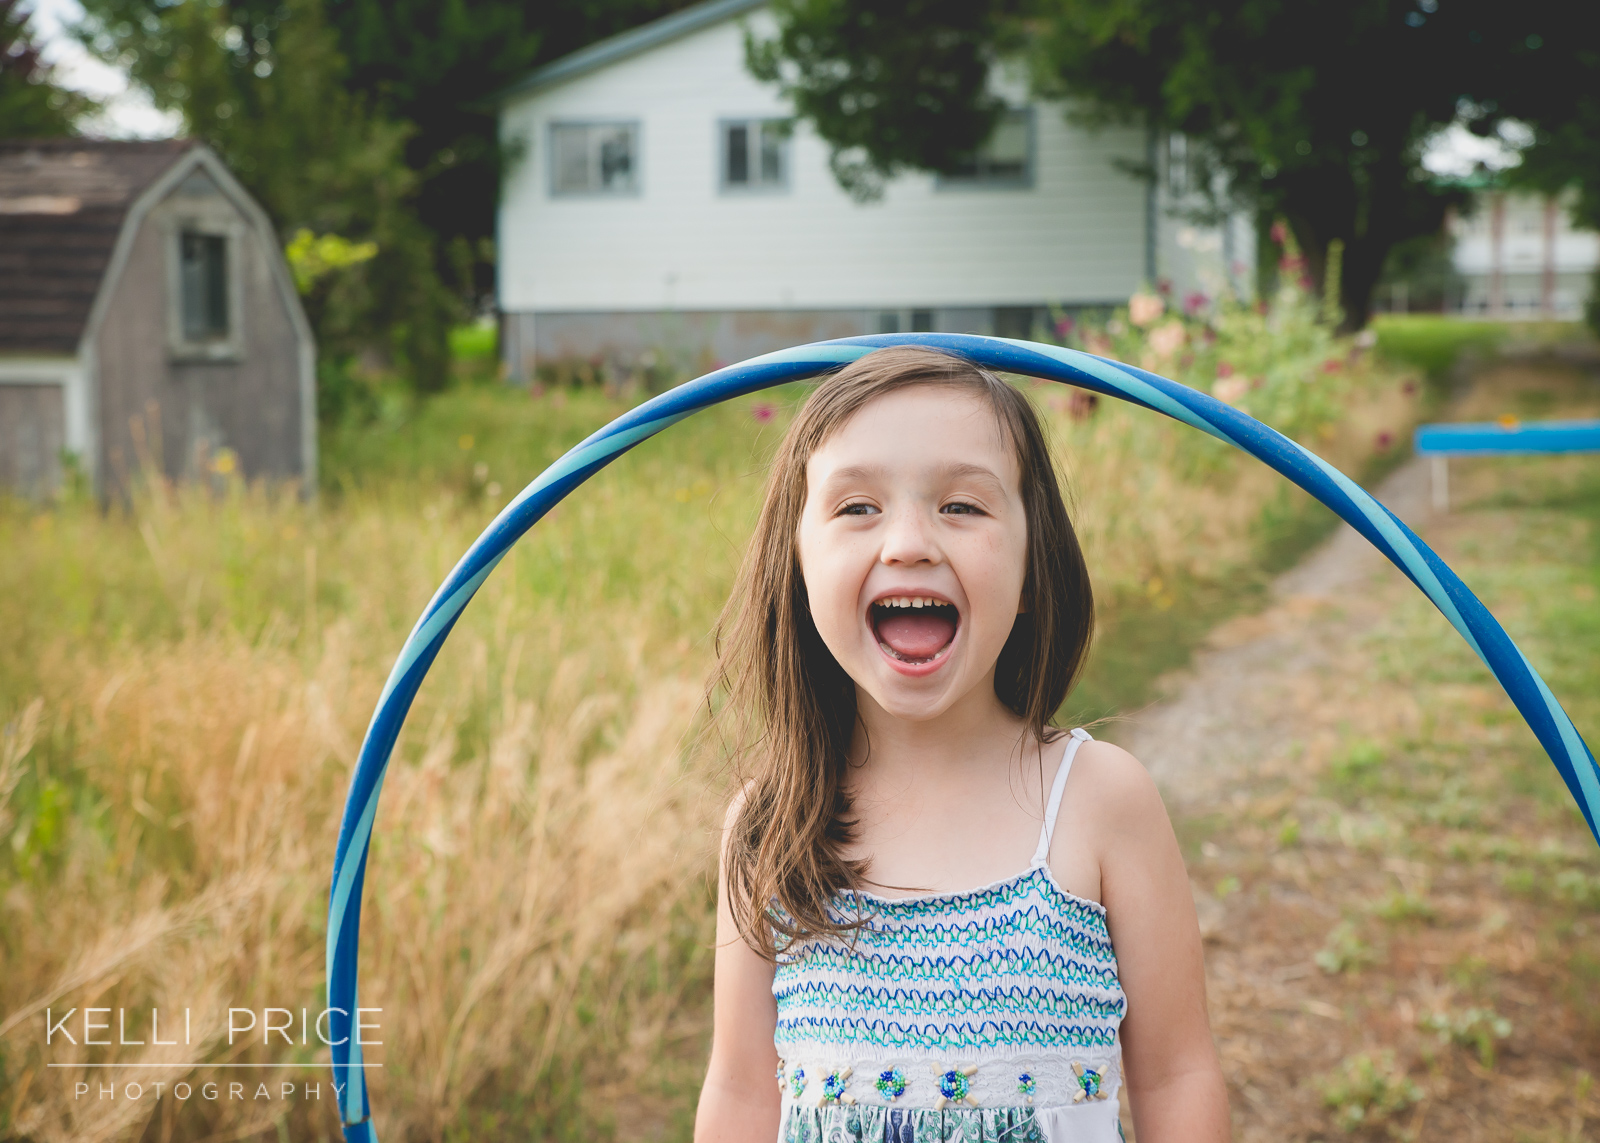 Bloopers18KelliPricePhotographyJuly2015.jpg